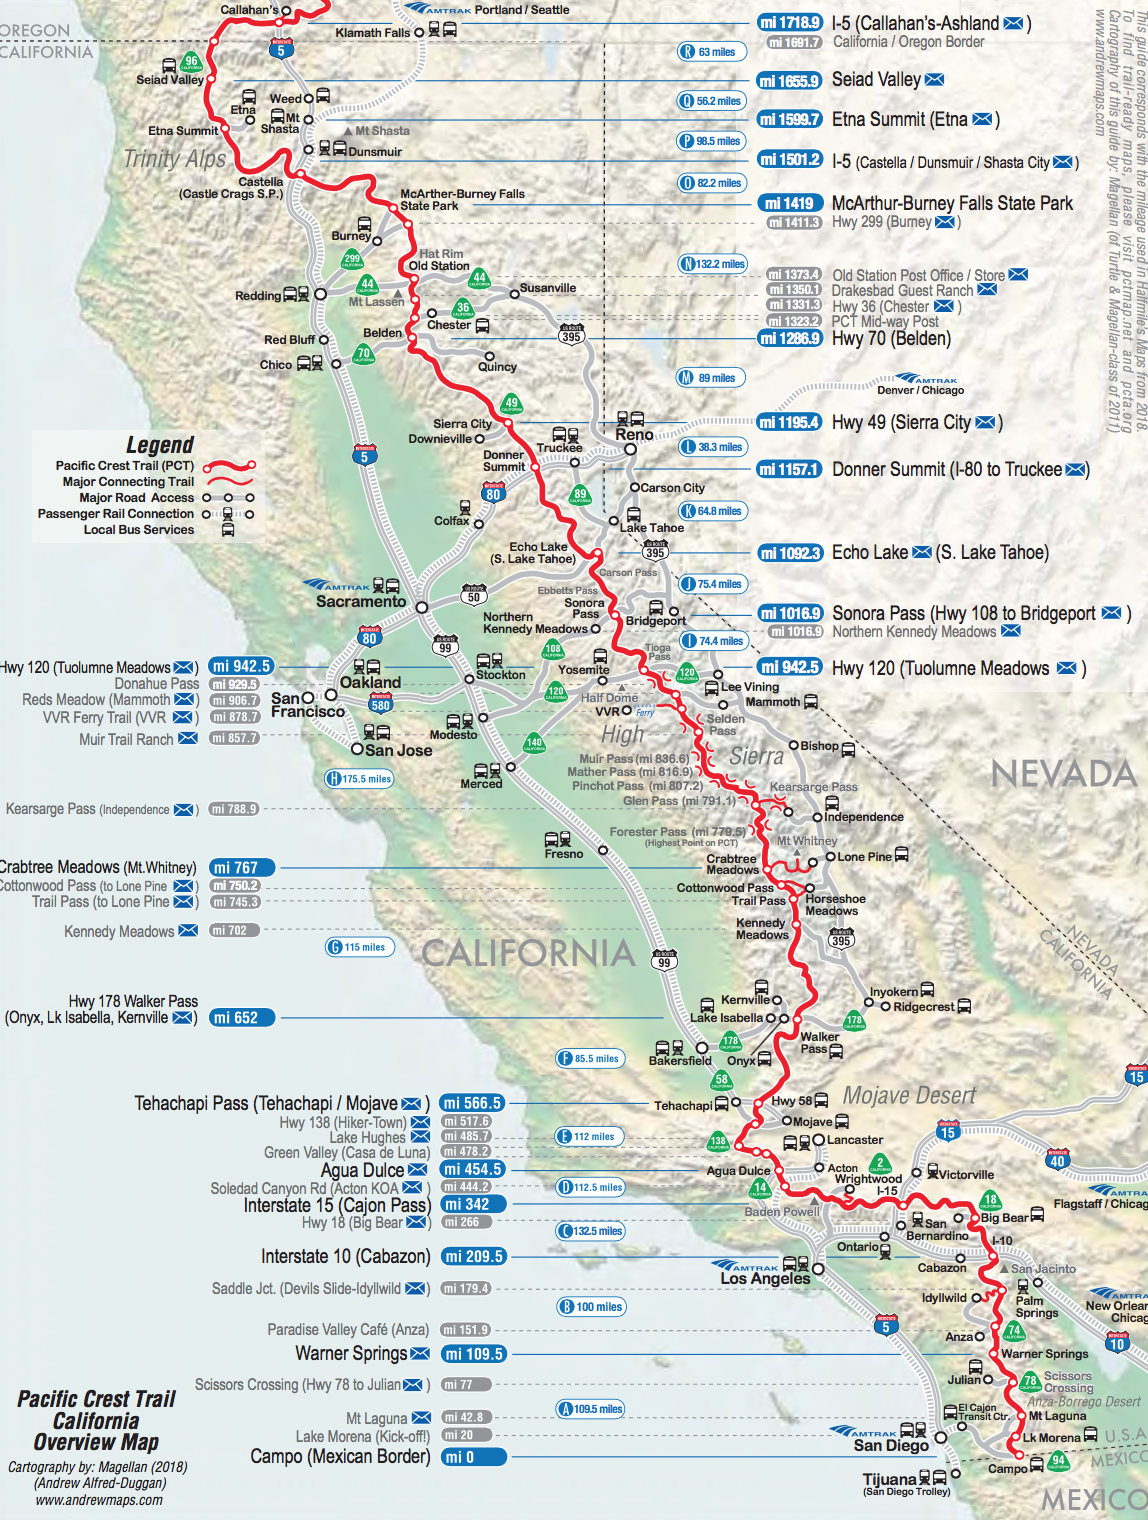 Pacific Crest Trail California Overview Map